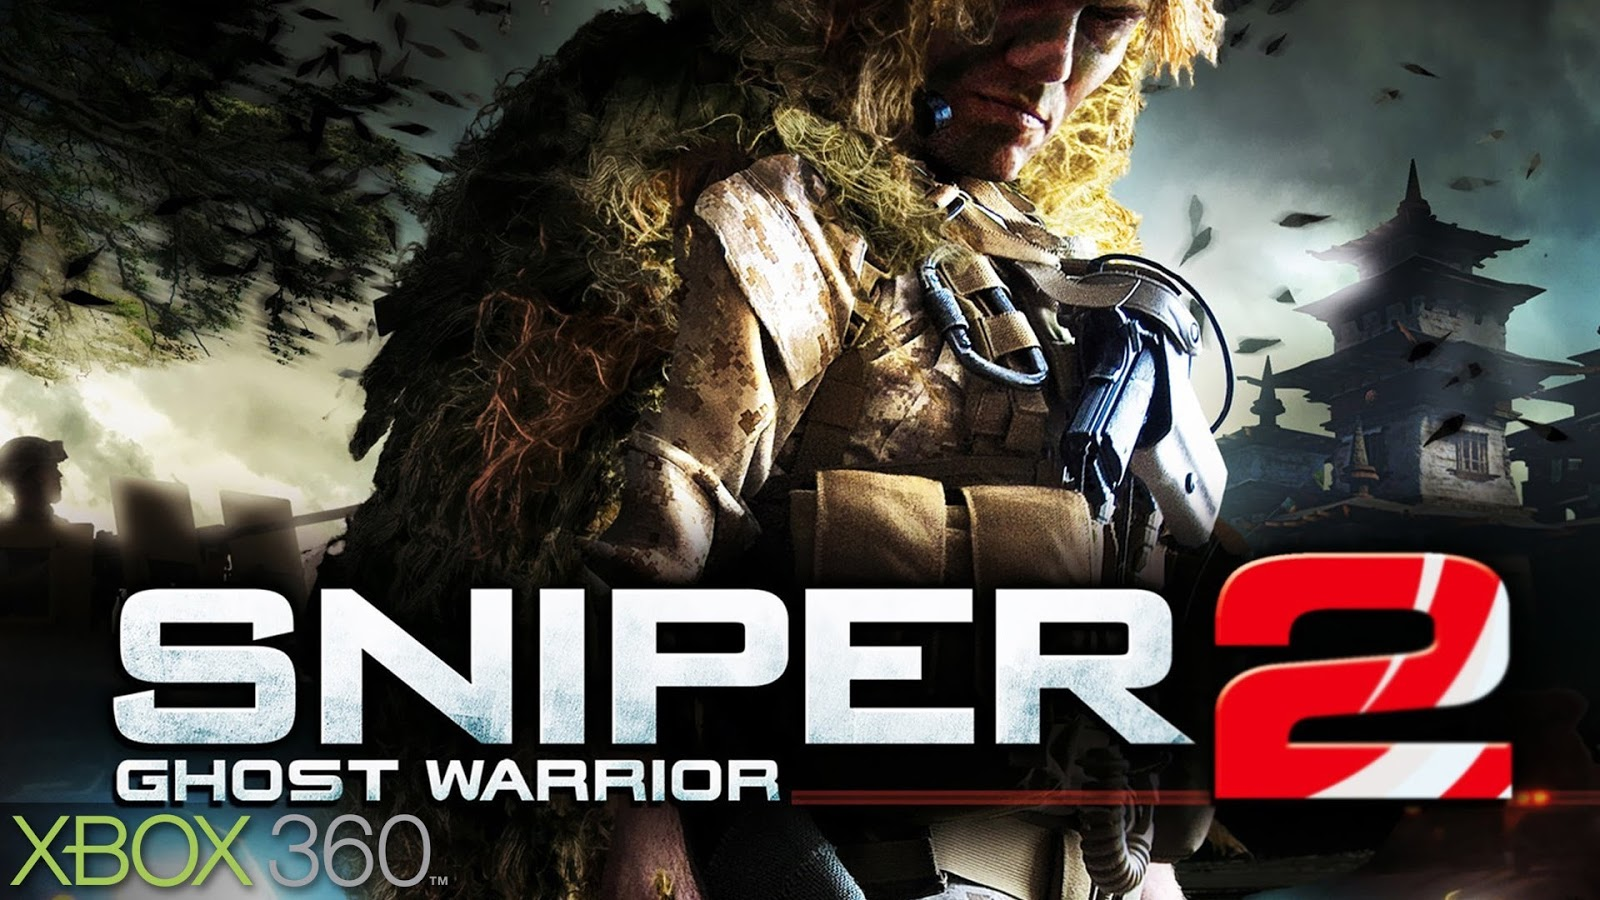 maxresdefault%2B%25281%2529 - Sniper Ghost Warrior 2 For XBOX 360